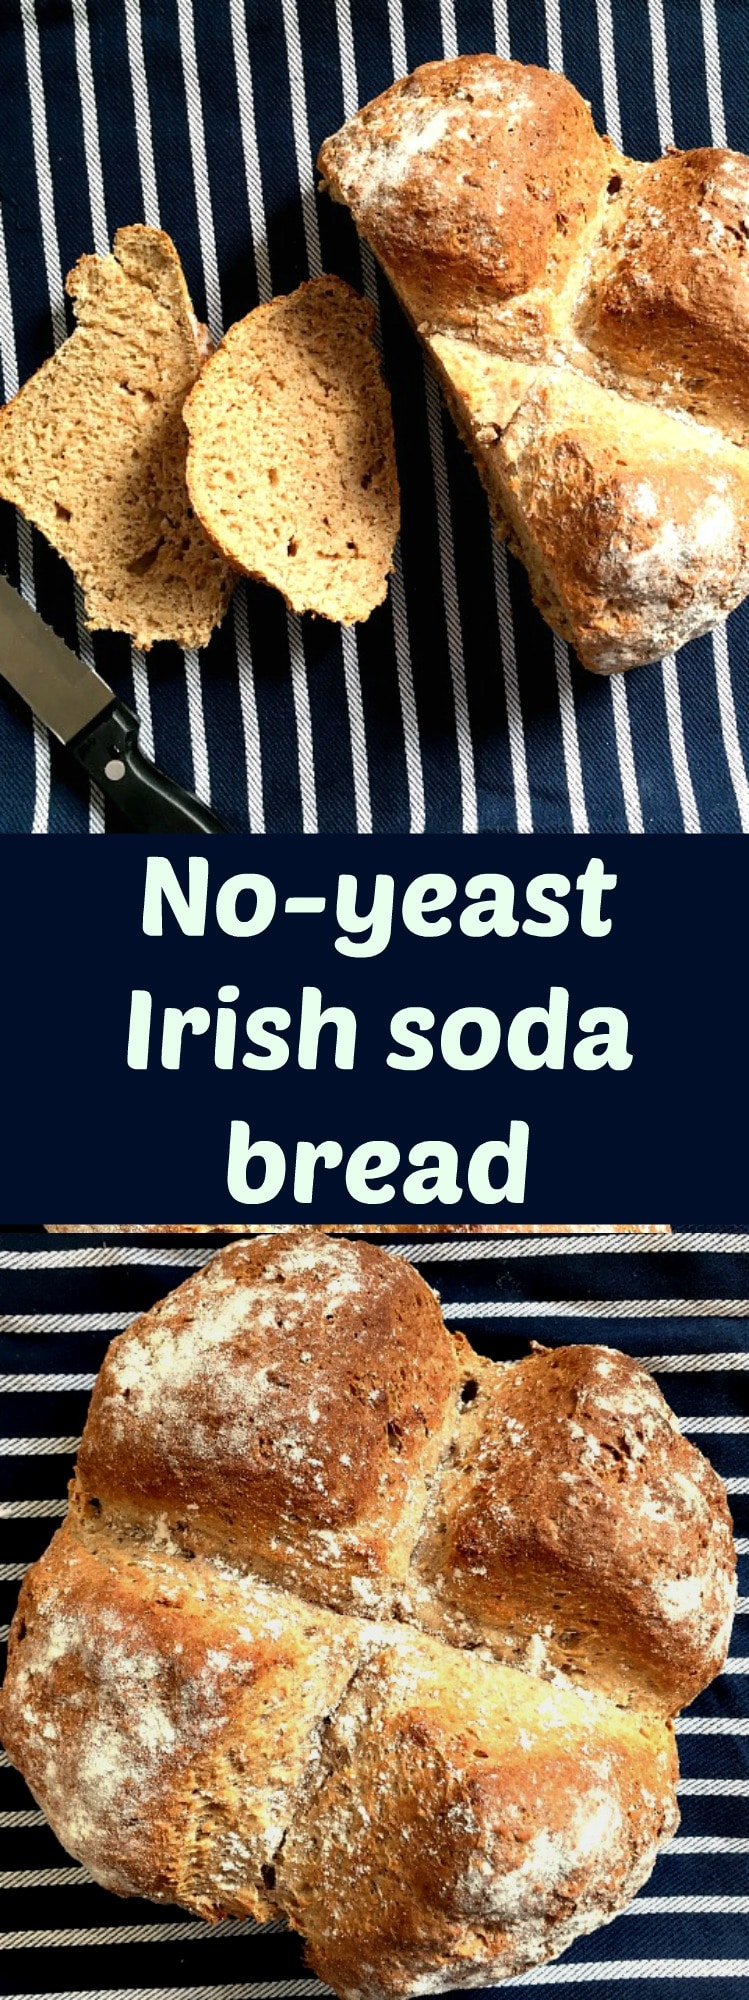 No-yeast Irish soda bread